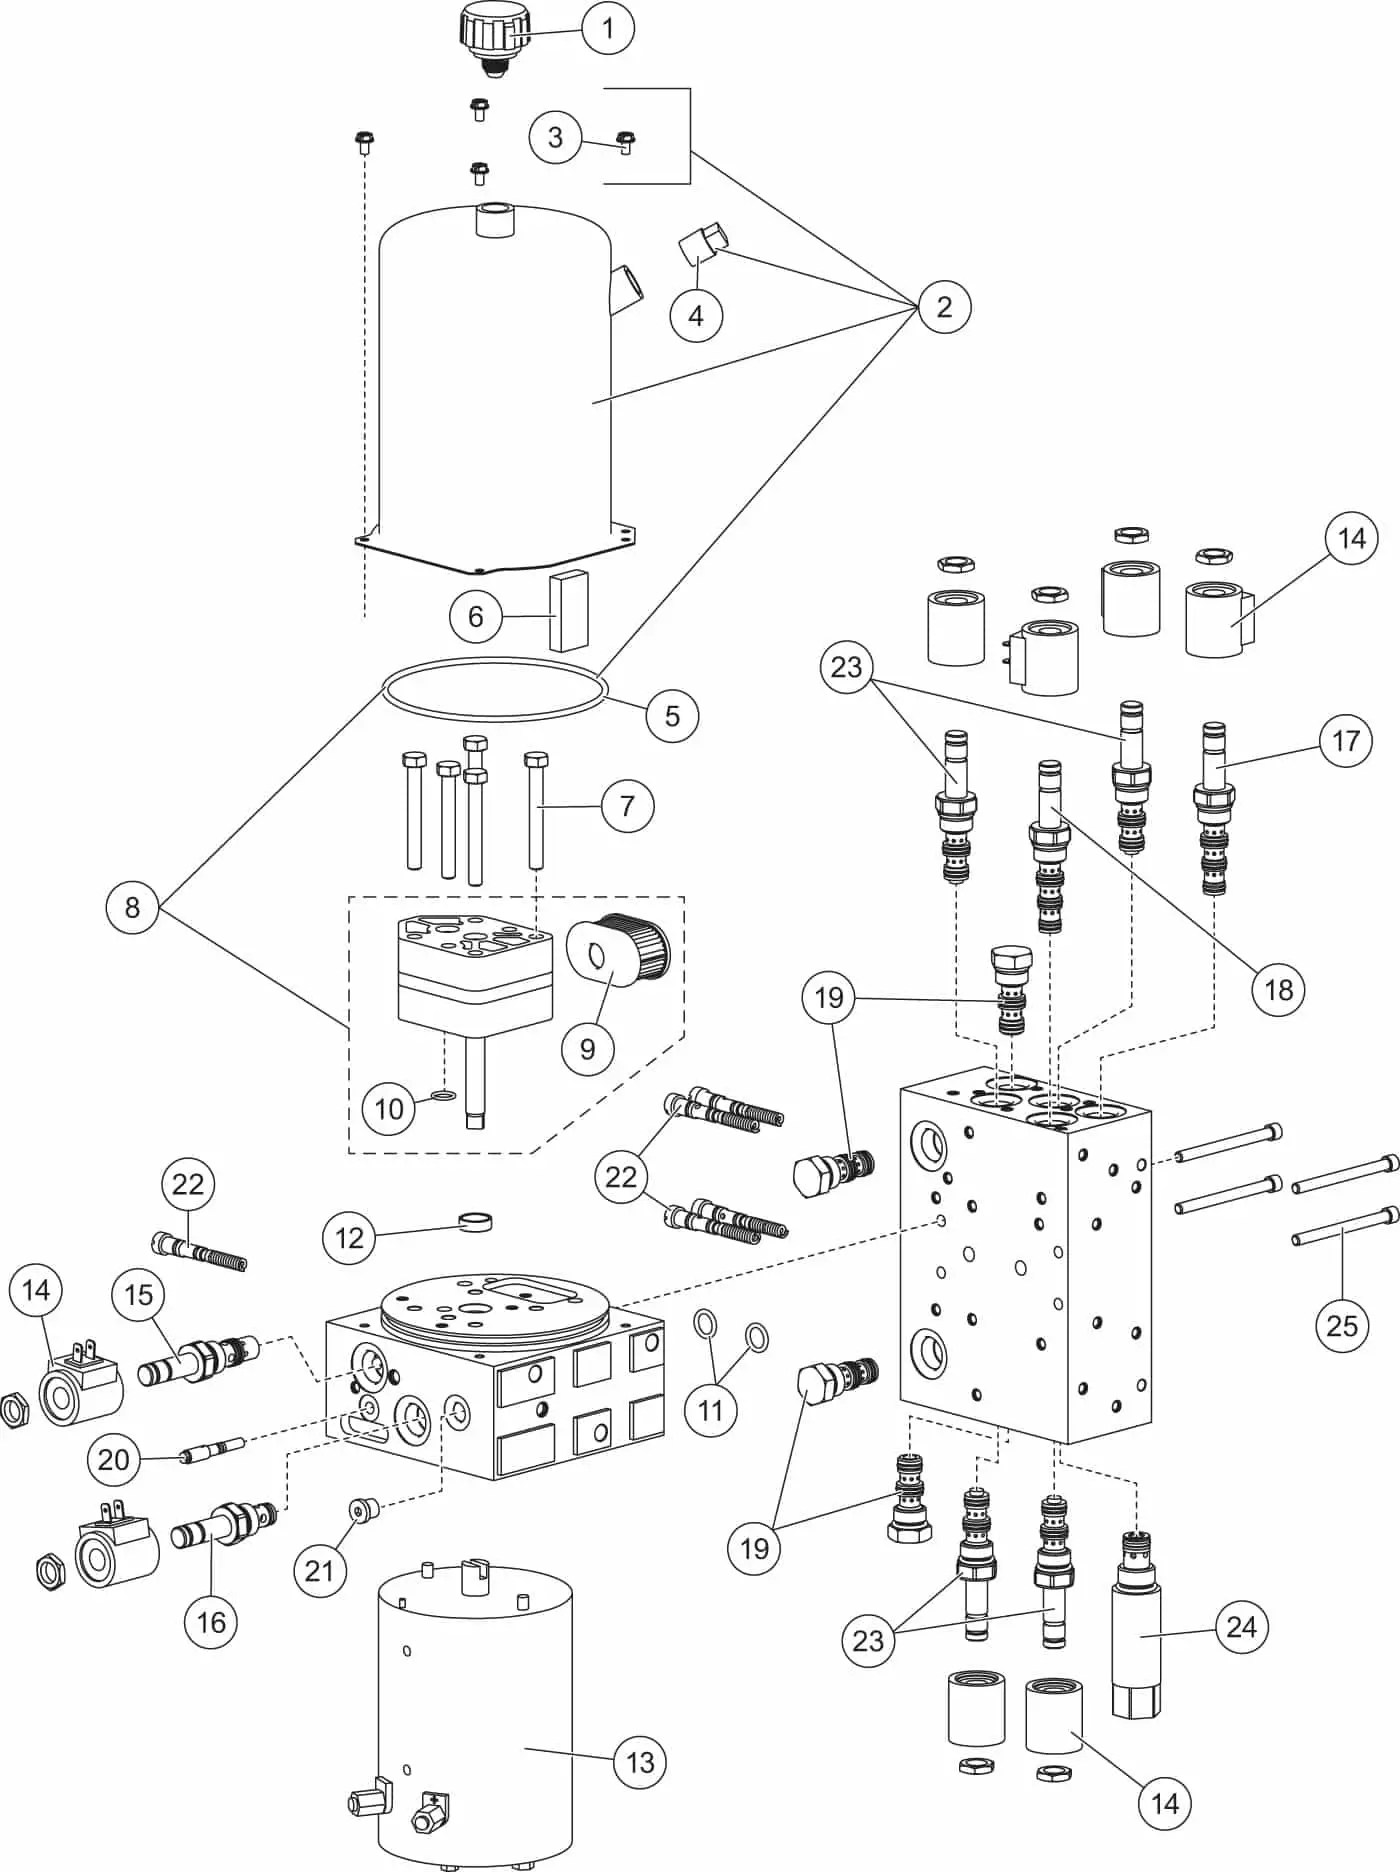 Wiring Database 28 Western Plow Pump Diagram